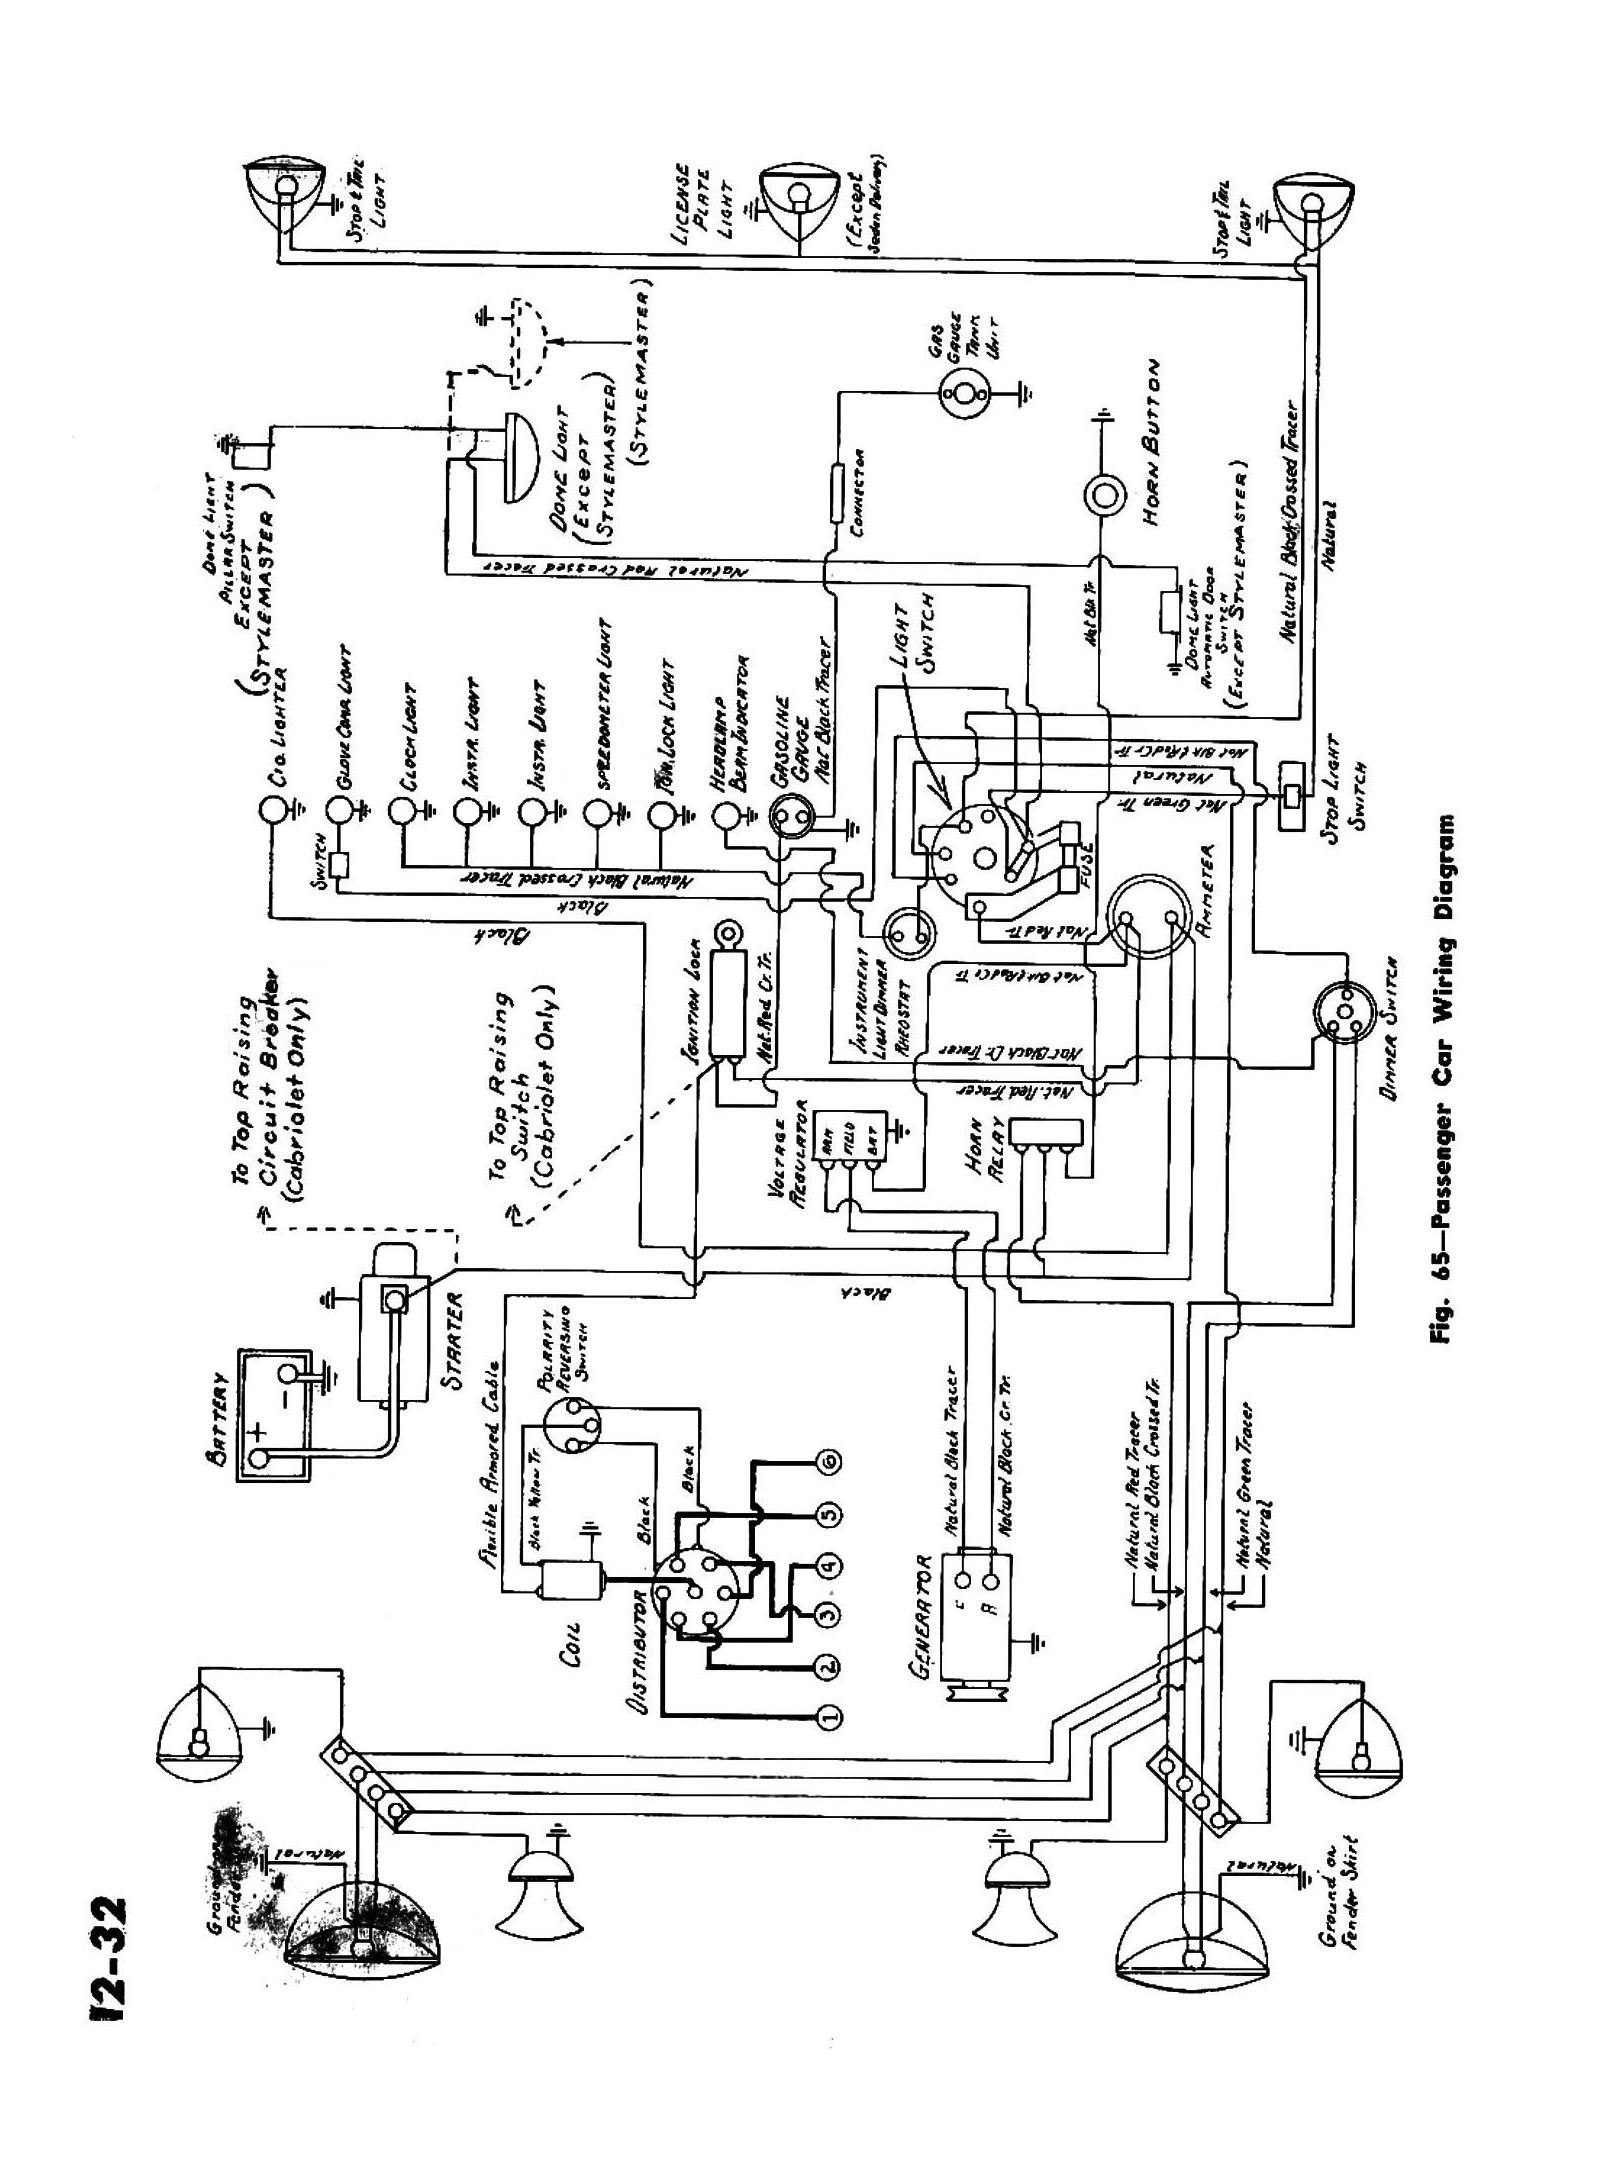 45car chevy wiring diagrams find wiring diagram for 87 ford f 150 at honlapkeszites.co